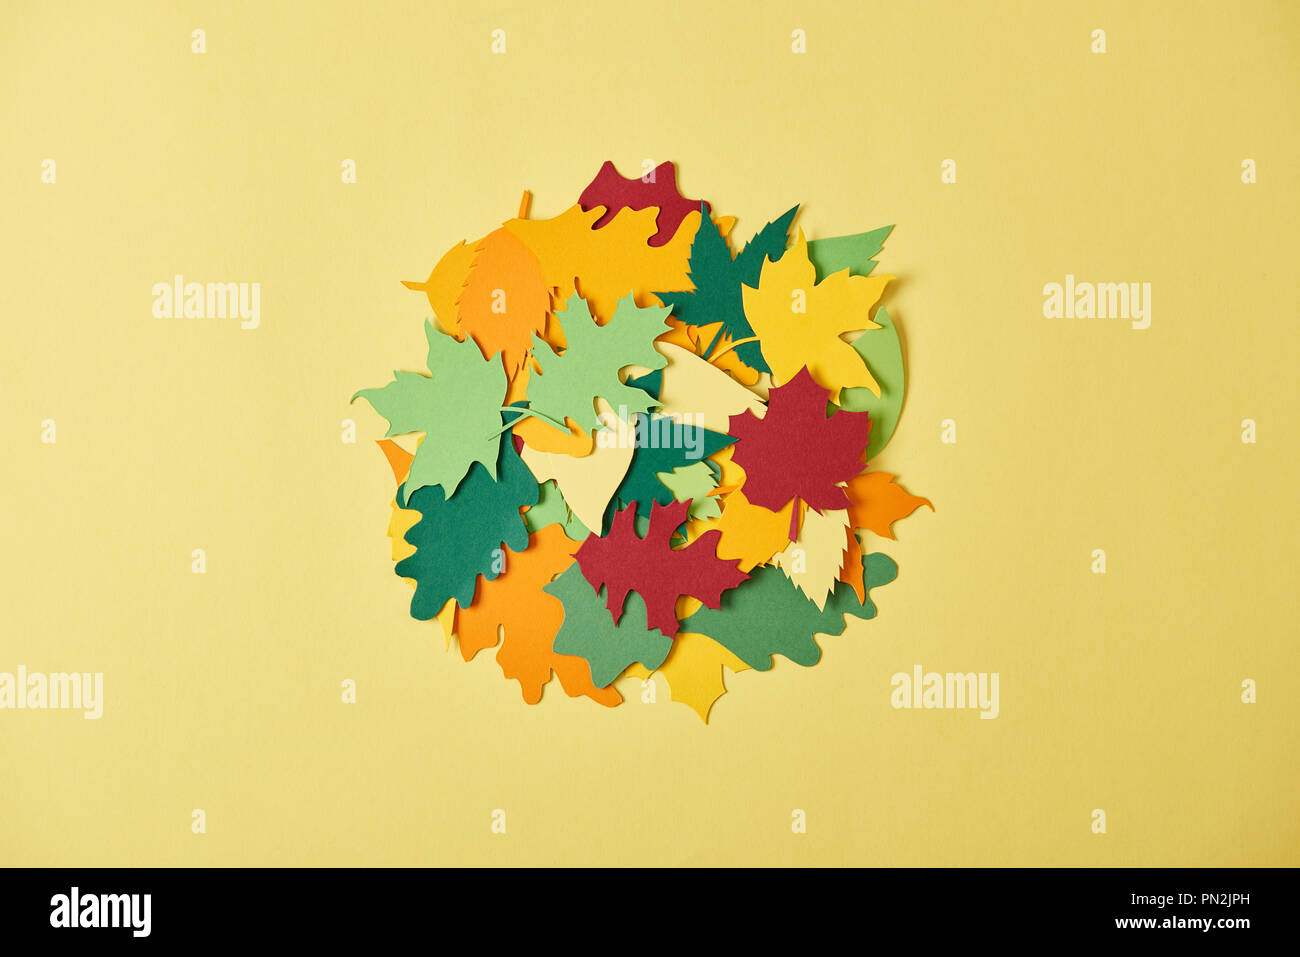 flat lay with colorful papercrafted foliage arranged in cirlce on yellow background - Stock Image